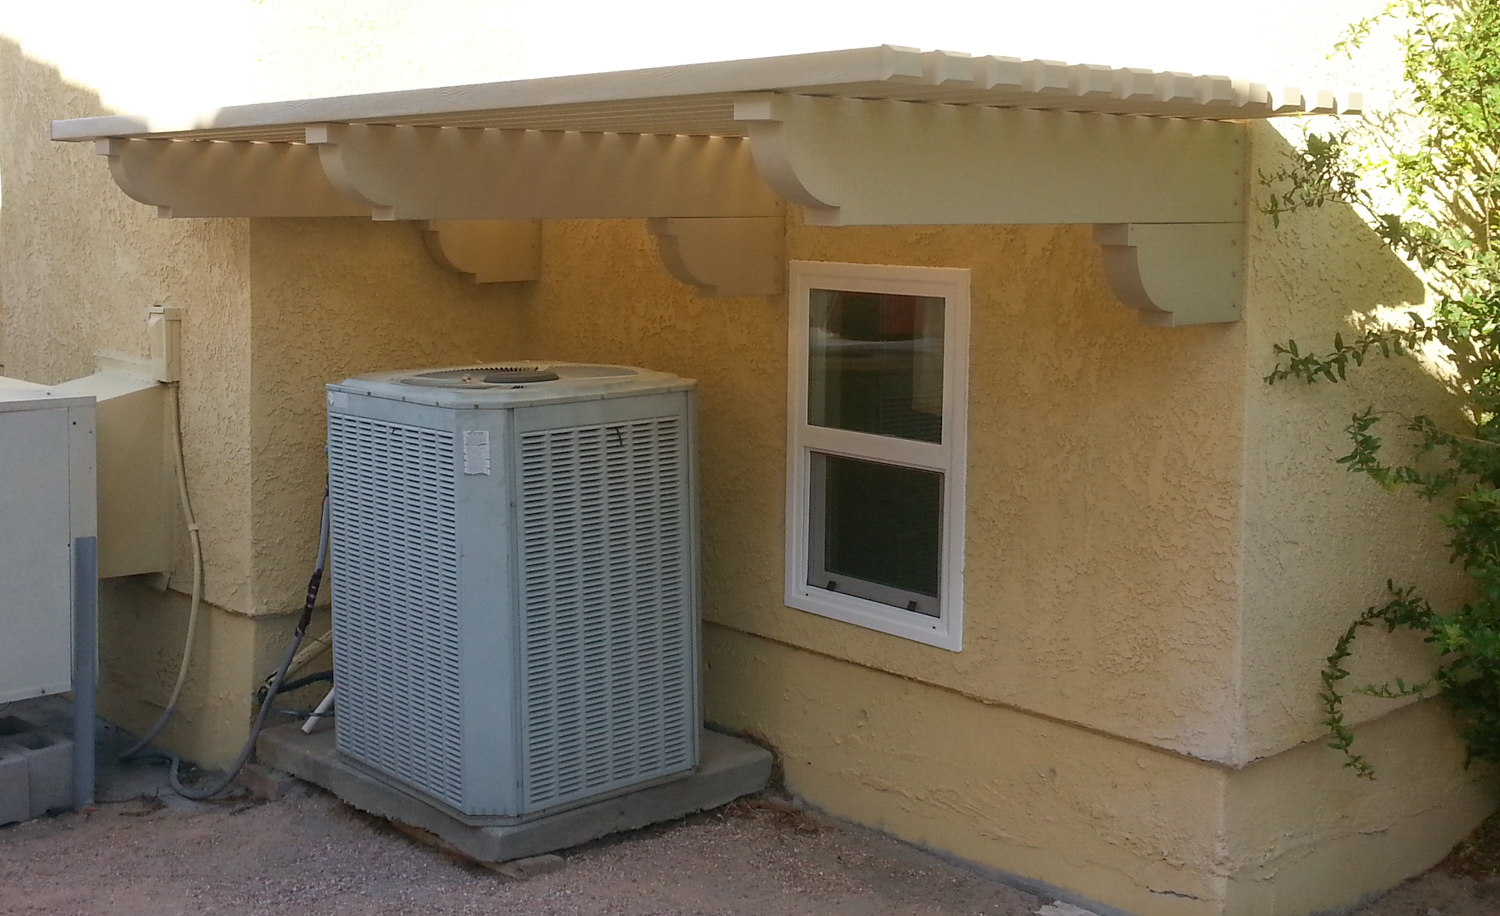 Patio Awning for Air Conditioning Unit, Indio, CA 92203